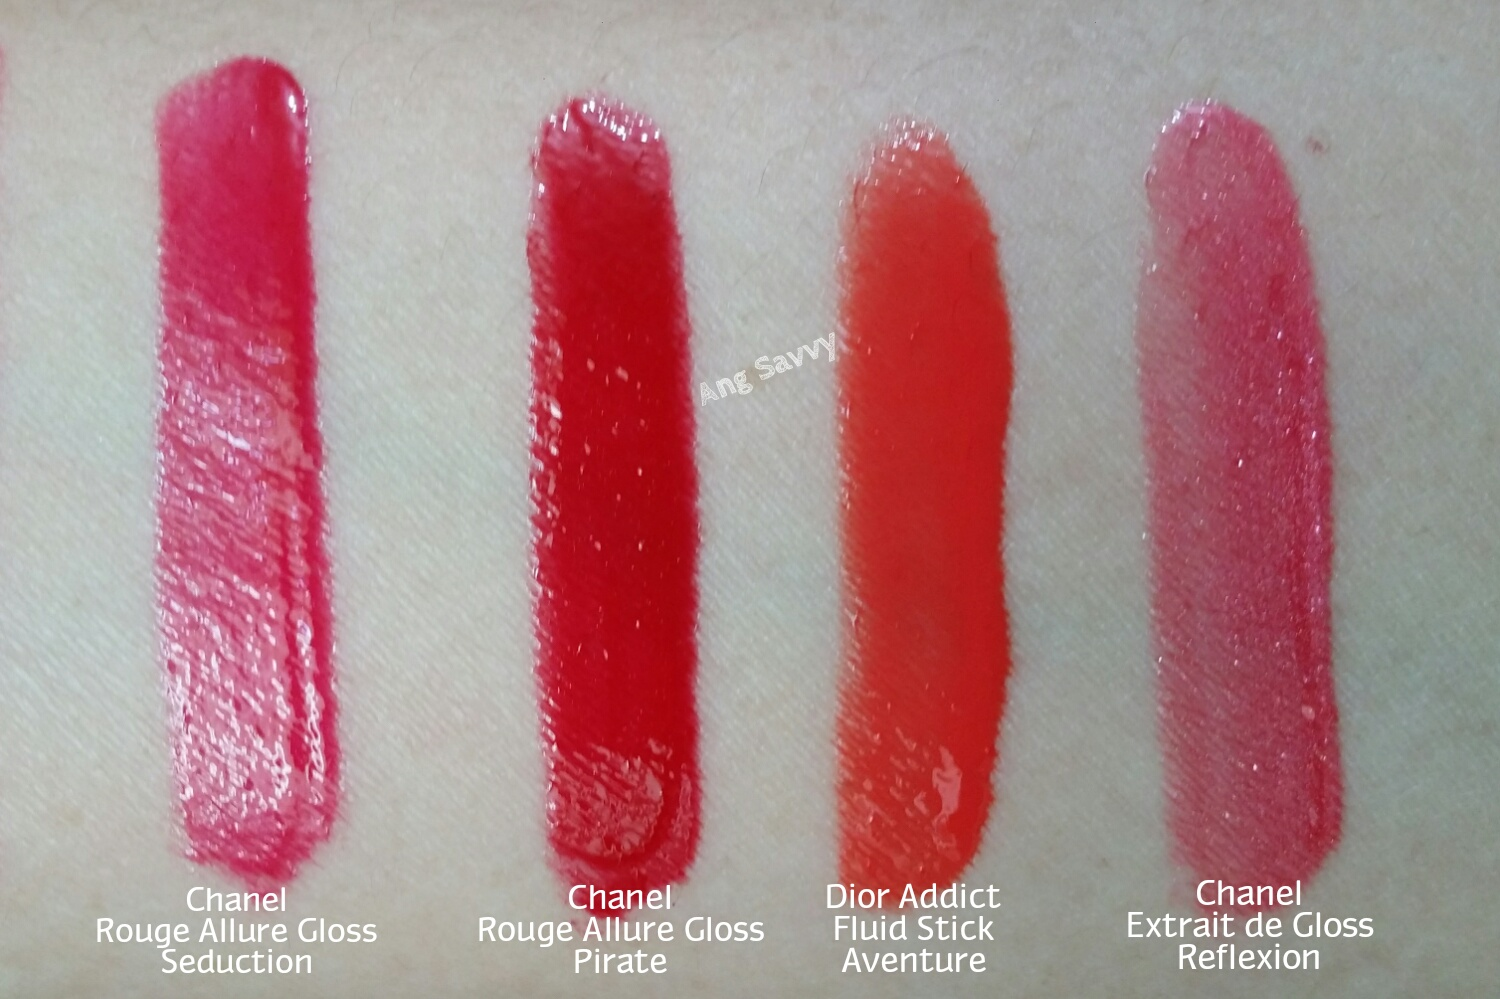 Chanel Rouge Allure Gloss Seduction Chanel Rouge Allure Gloss 18